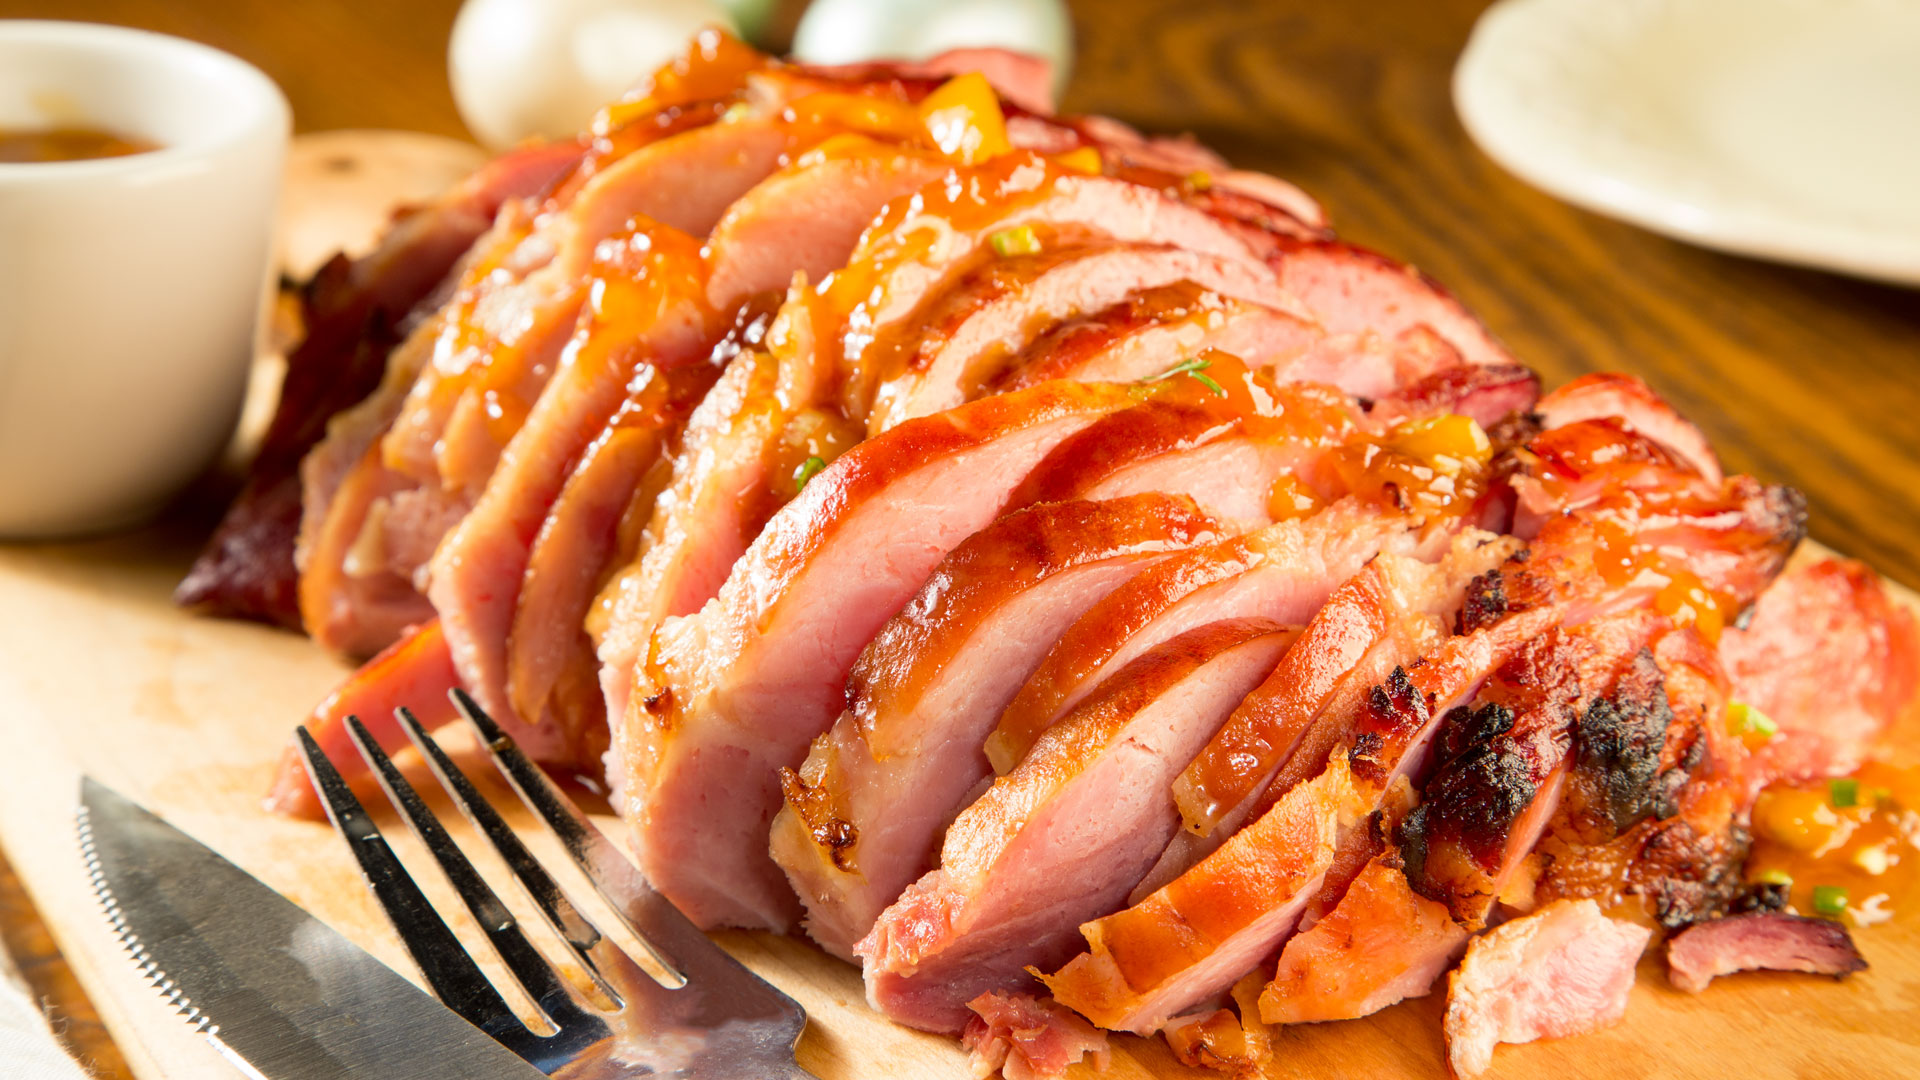 A pit ham has been internally trimmed to remove the bone and much of the fat, while leaving the marbling for flavor.